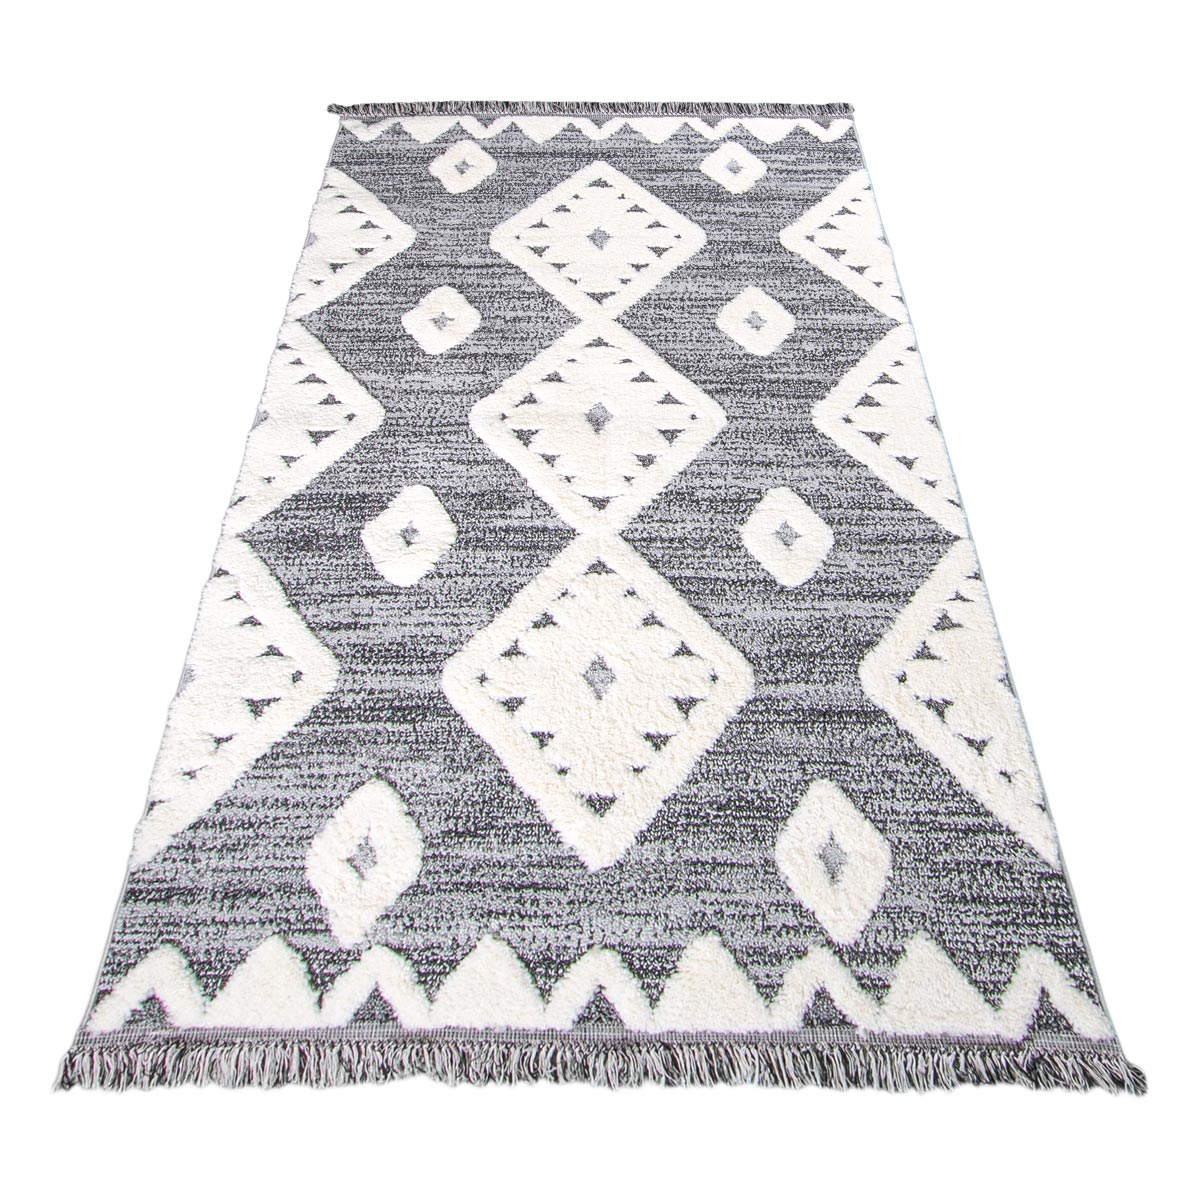 Atlas Rug 07 Grey Runner - Fringes 2